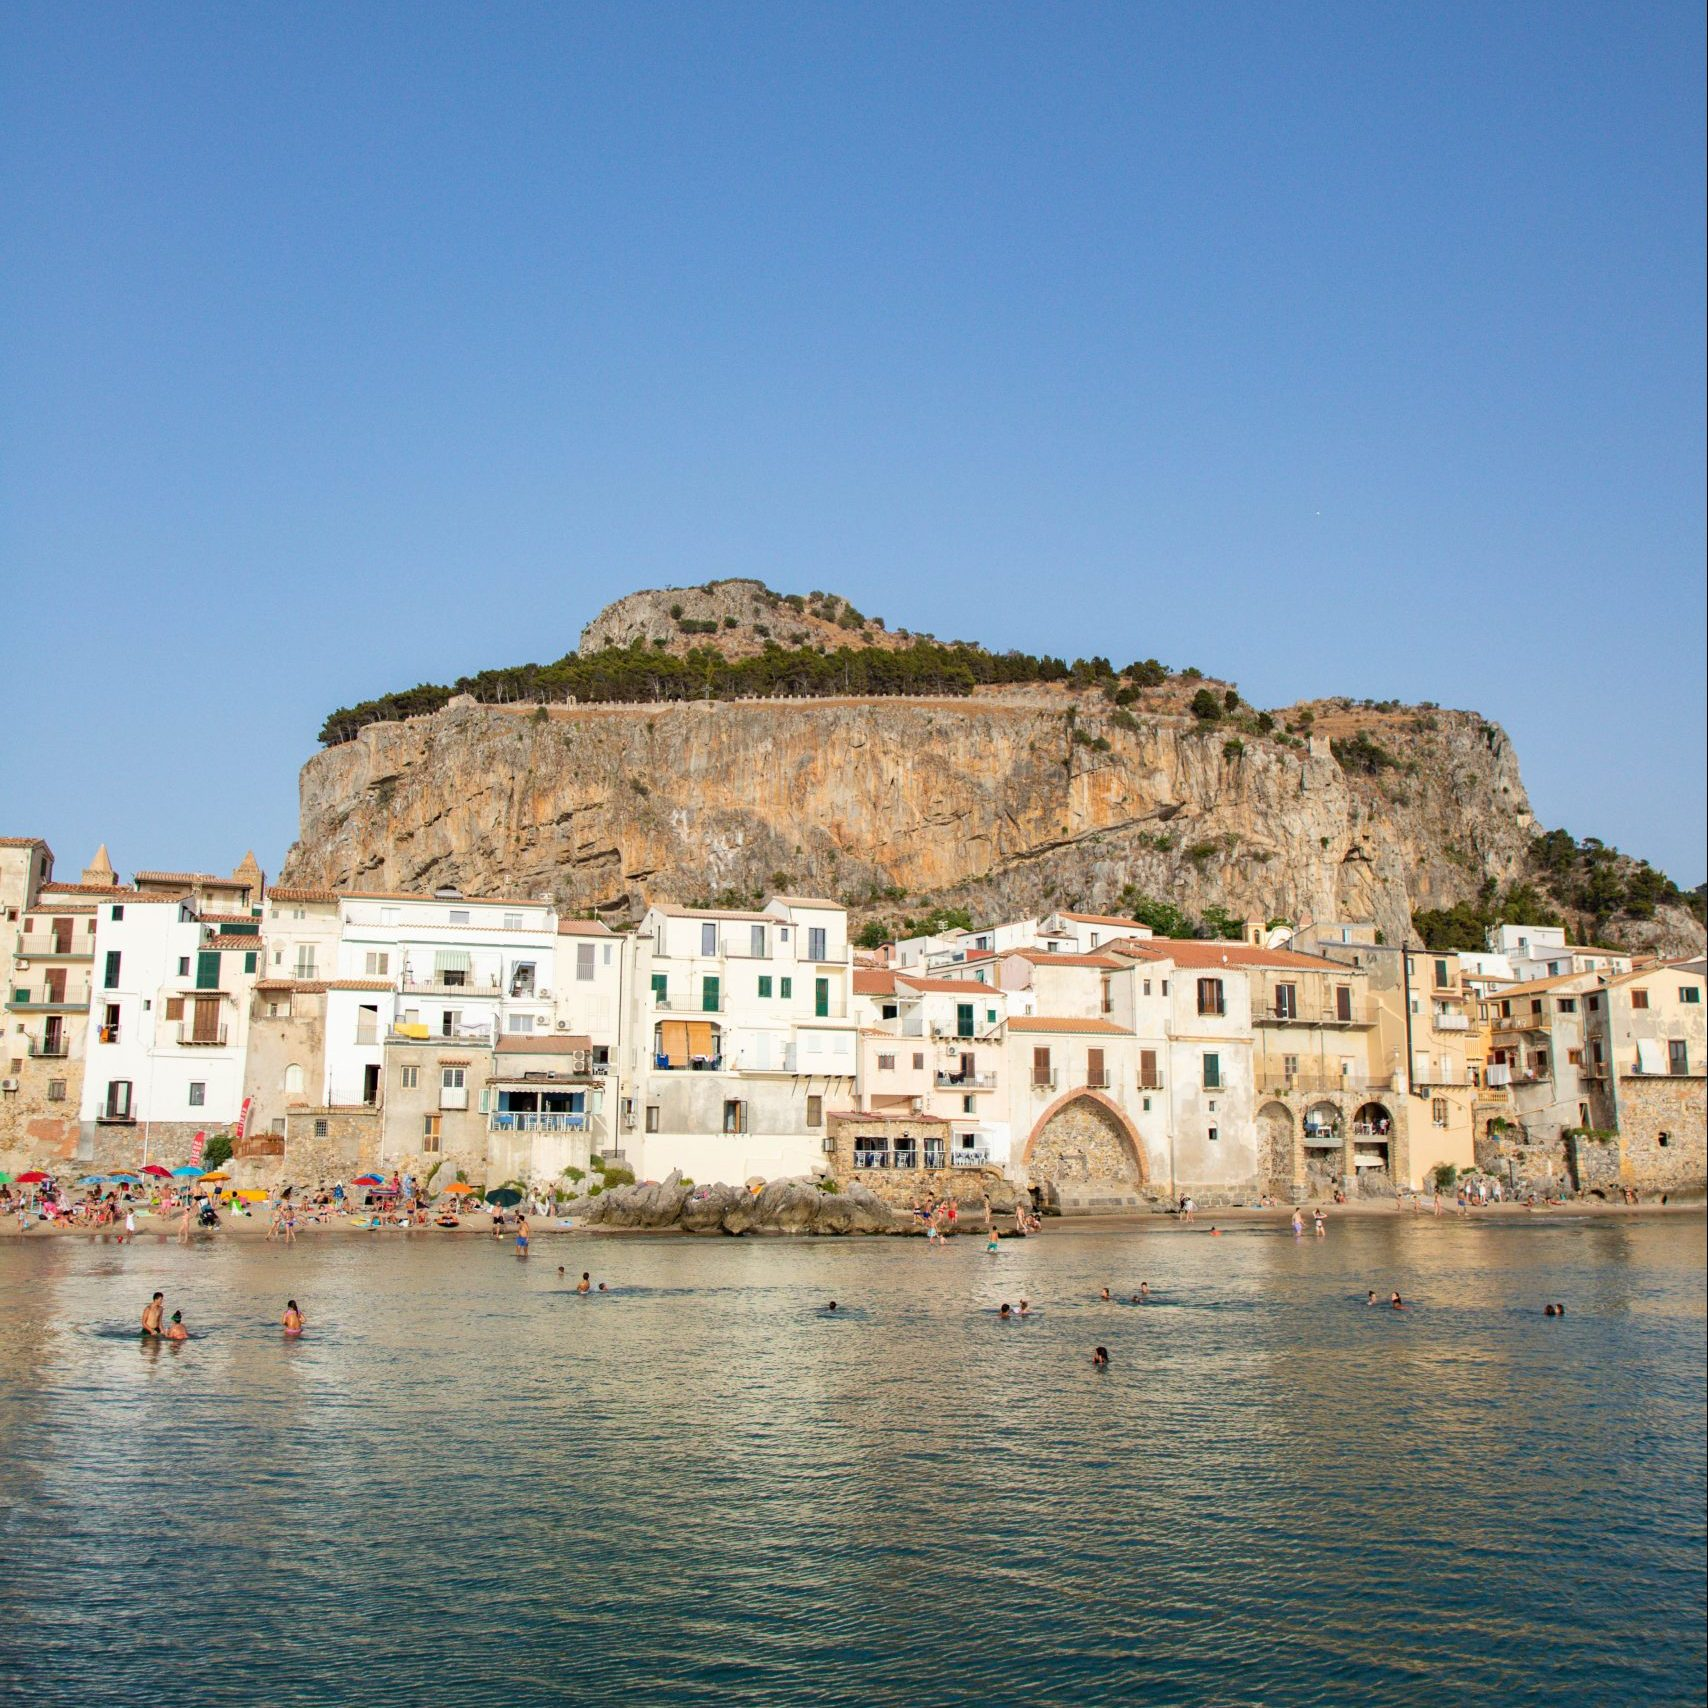 Italians love Cefalu as a vacation destination - for good reason! Here's what you should know to plan your trip!